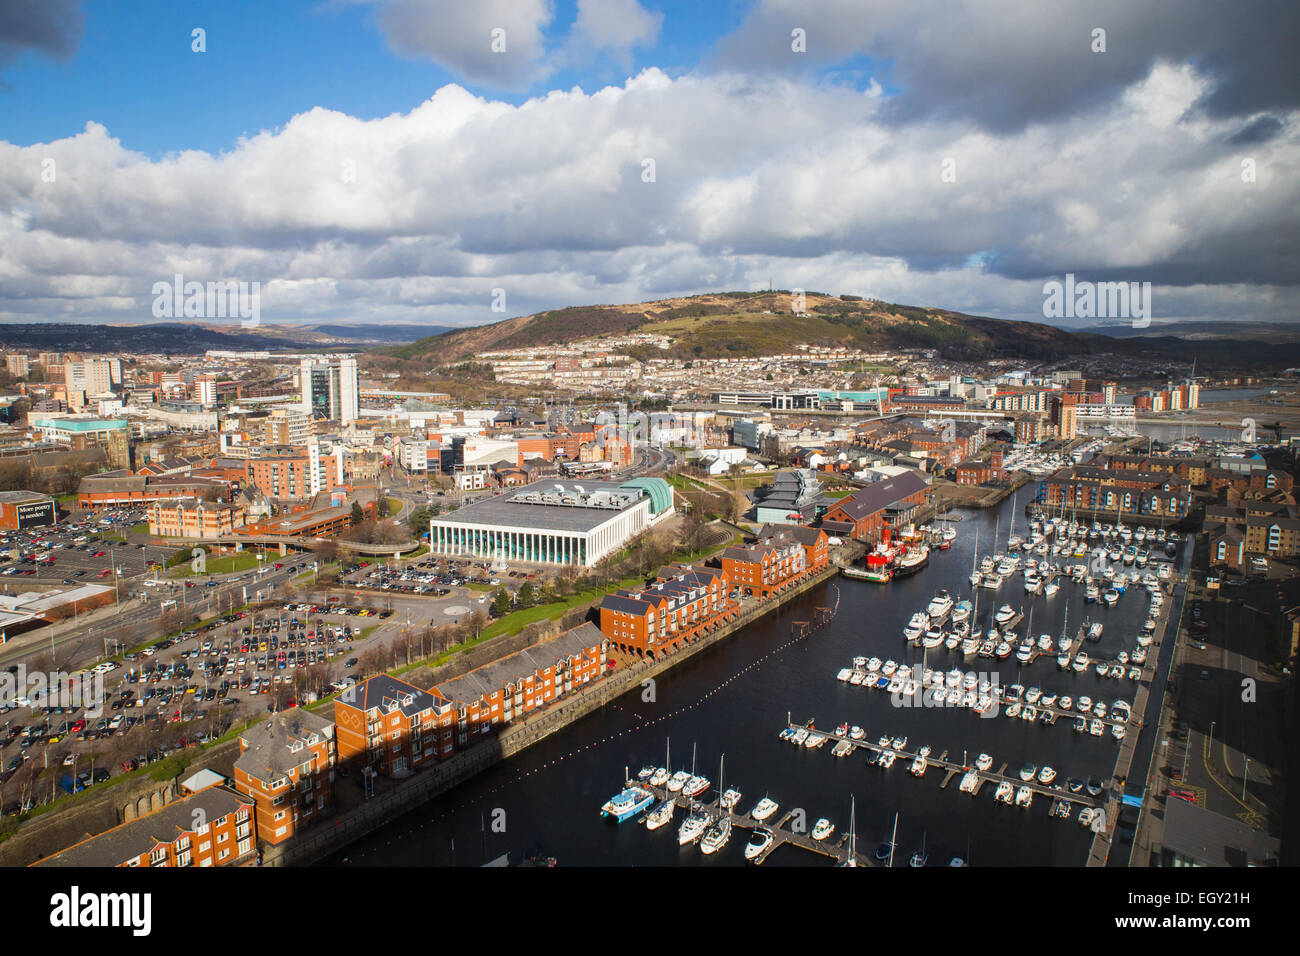 View of Swansea City and Marina. - Stock Image